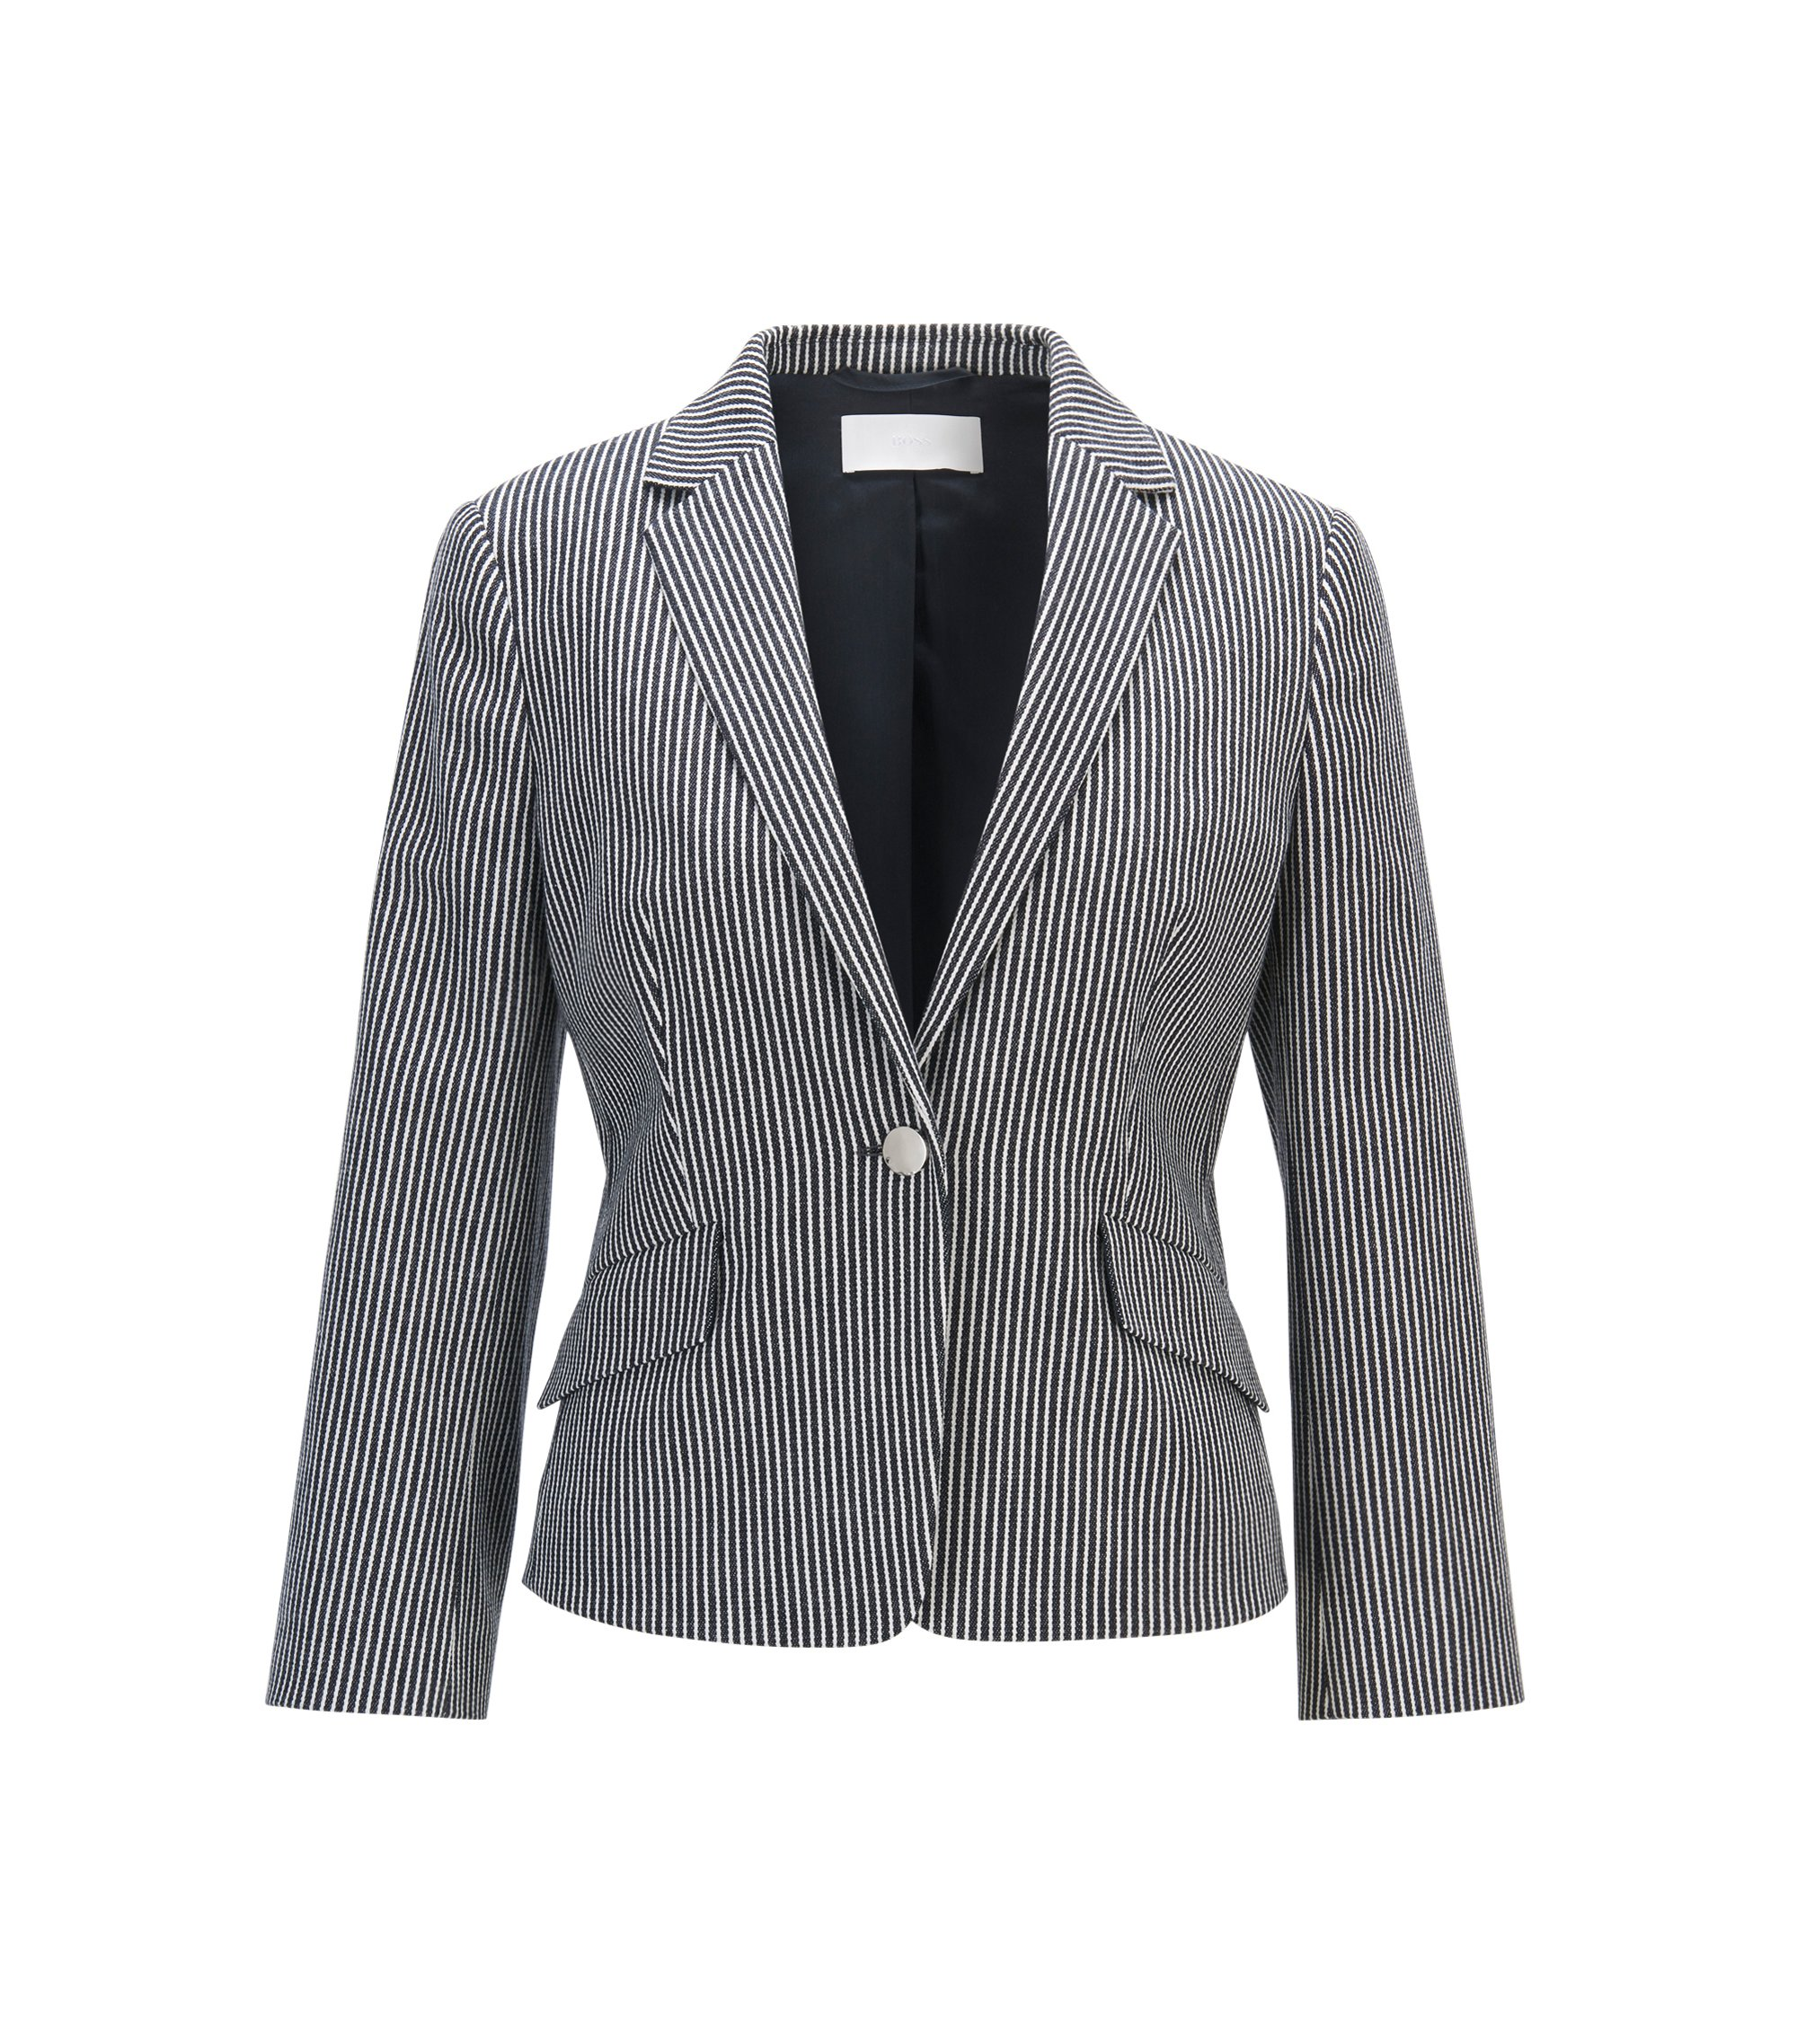 Regular-fit tailored jacket in denim-stripe stretch cotton, Patterned